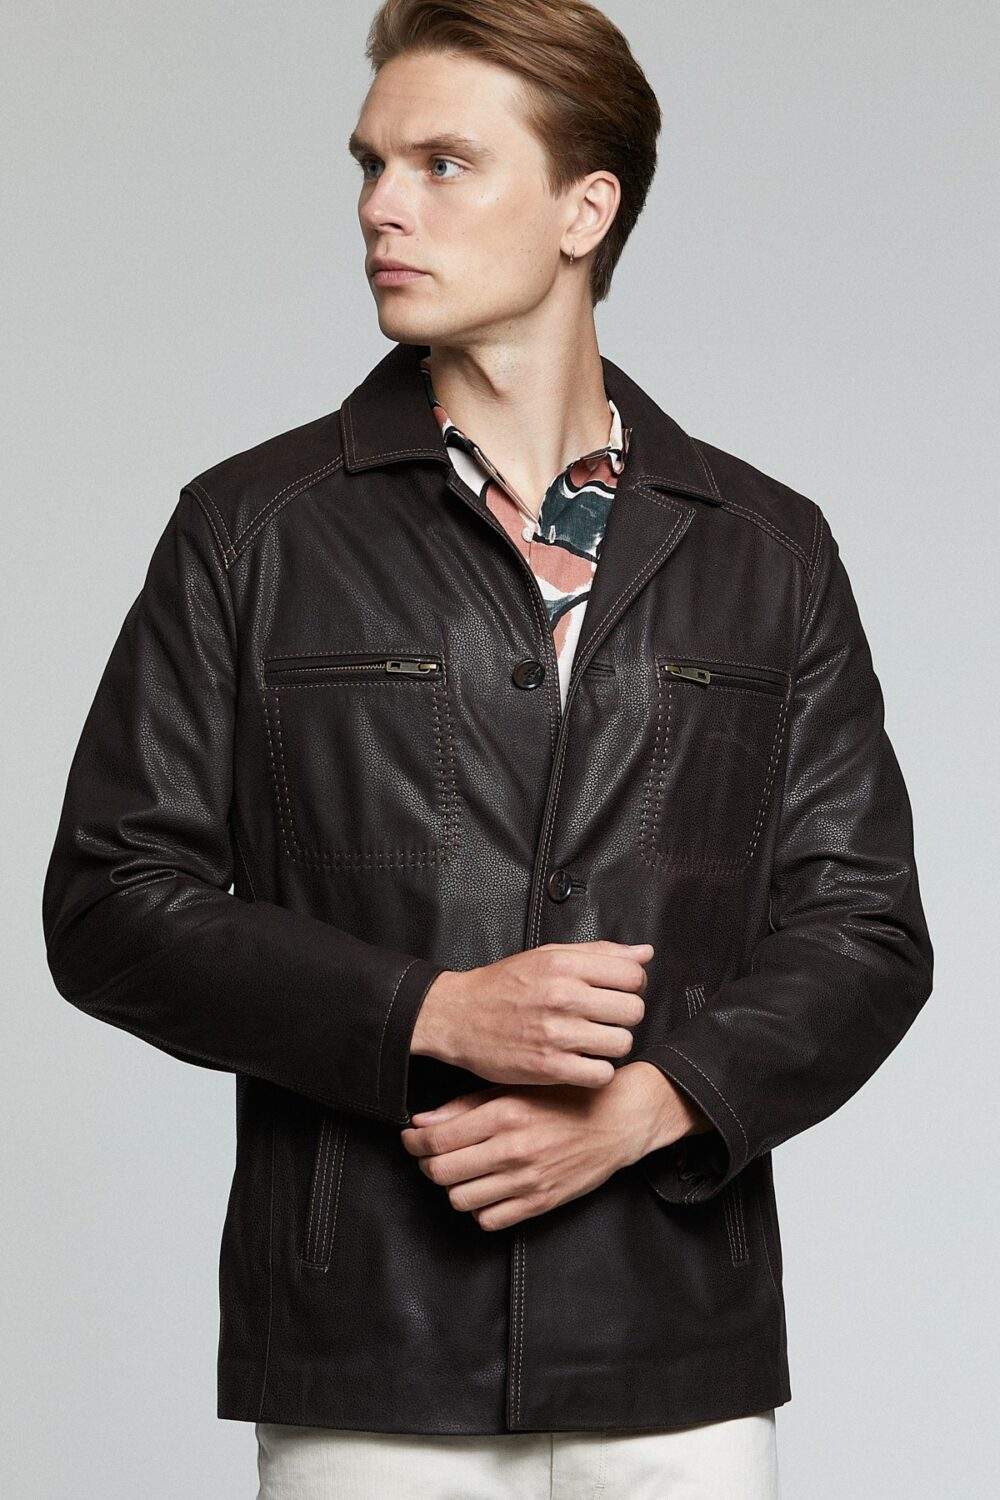 Burberry Leather Jacket Price